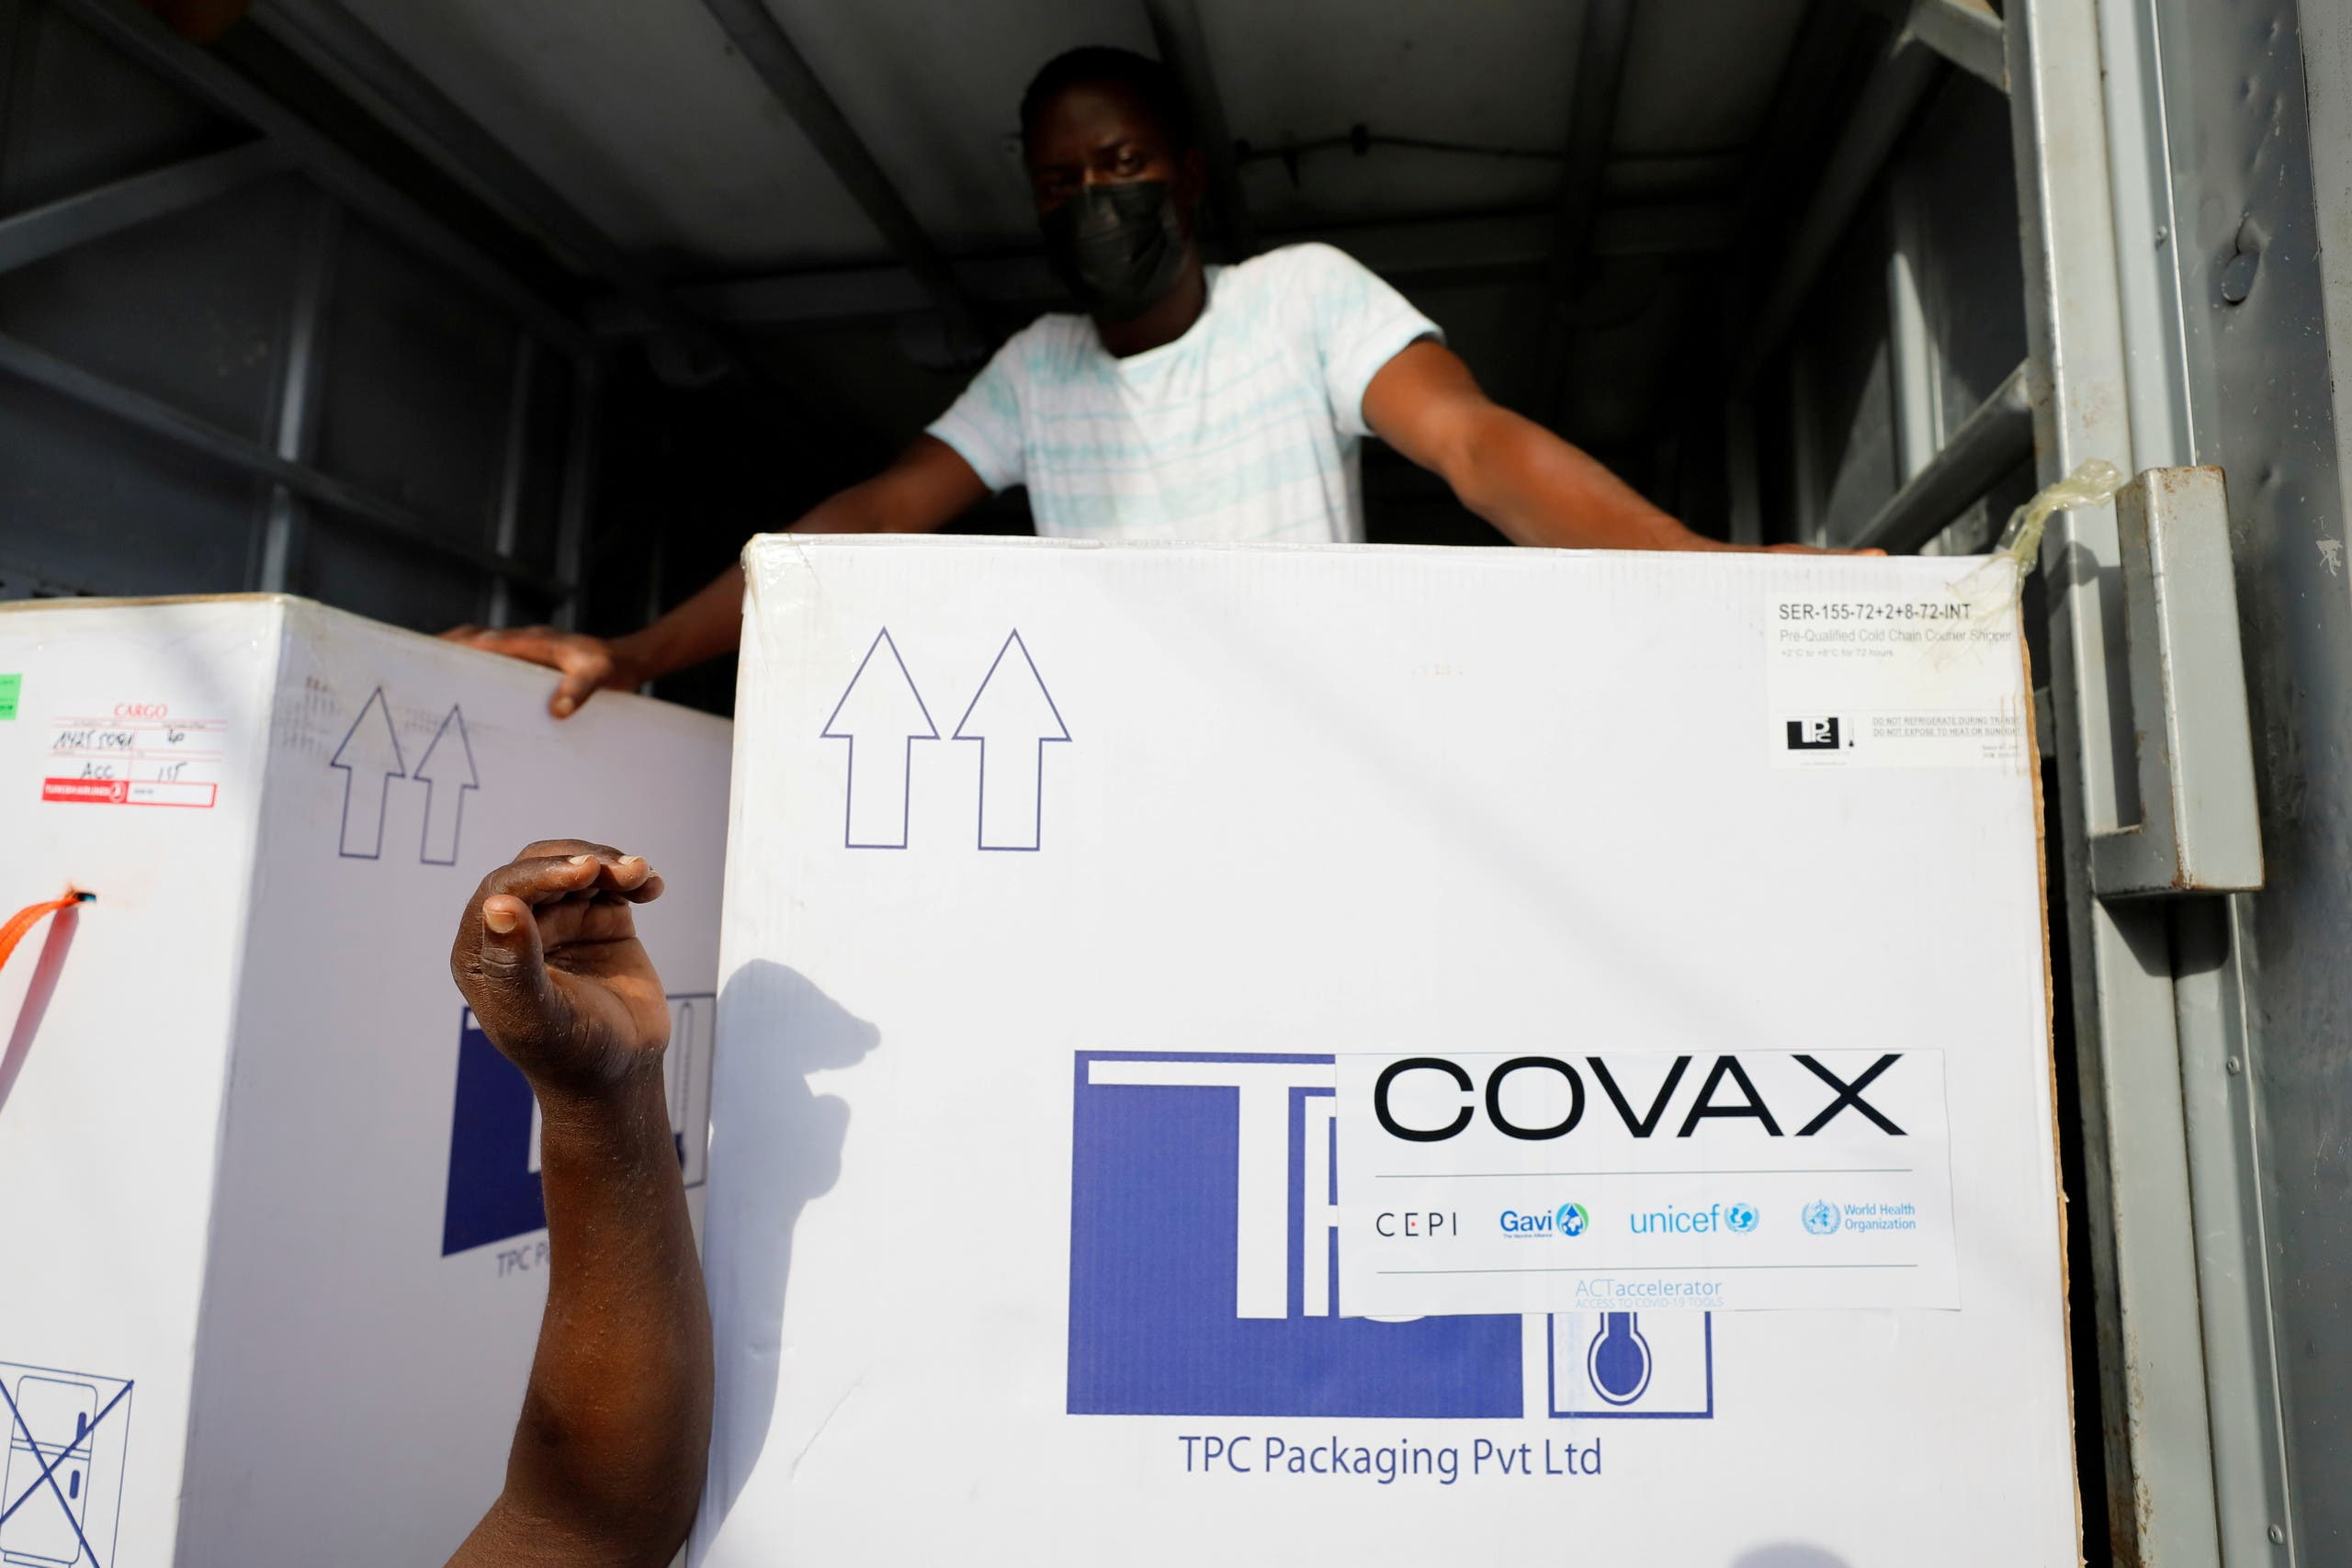 Boxes of Oxford/AstraZeneca coronavirus disease (COVID-19) vaccines, redeployed from the Democratic Republic of Congo, arrive at a cold storage facility in Accra, Ghana, May 7, 2021. (File Photo: Reuters)